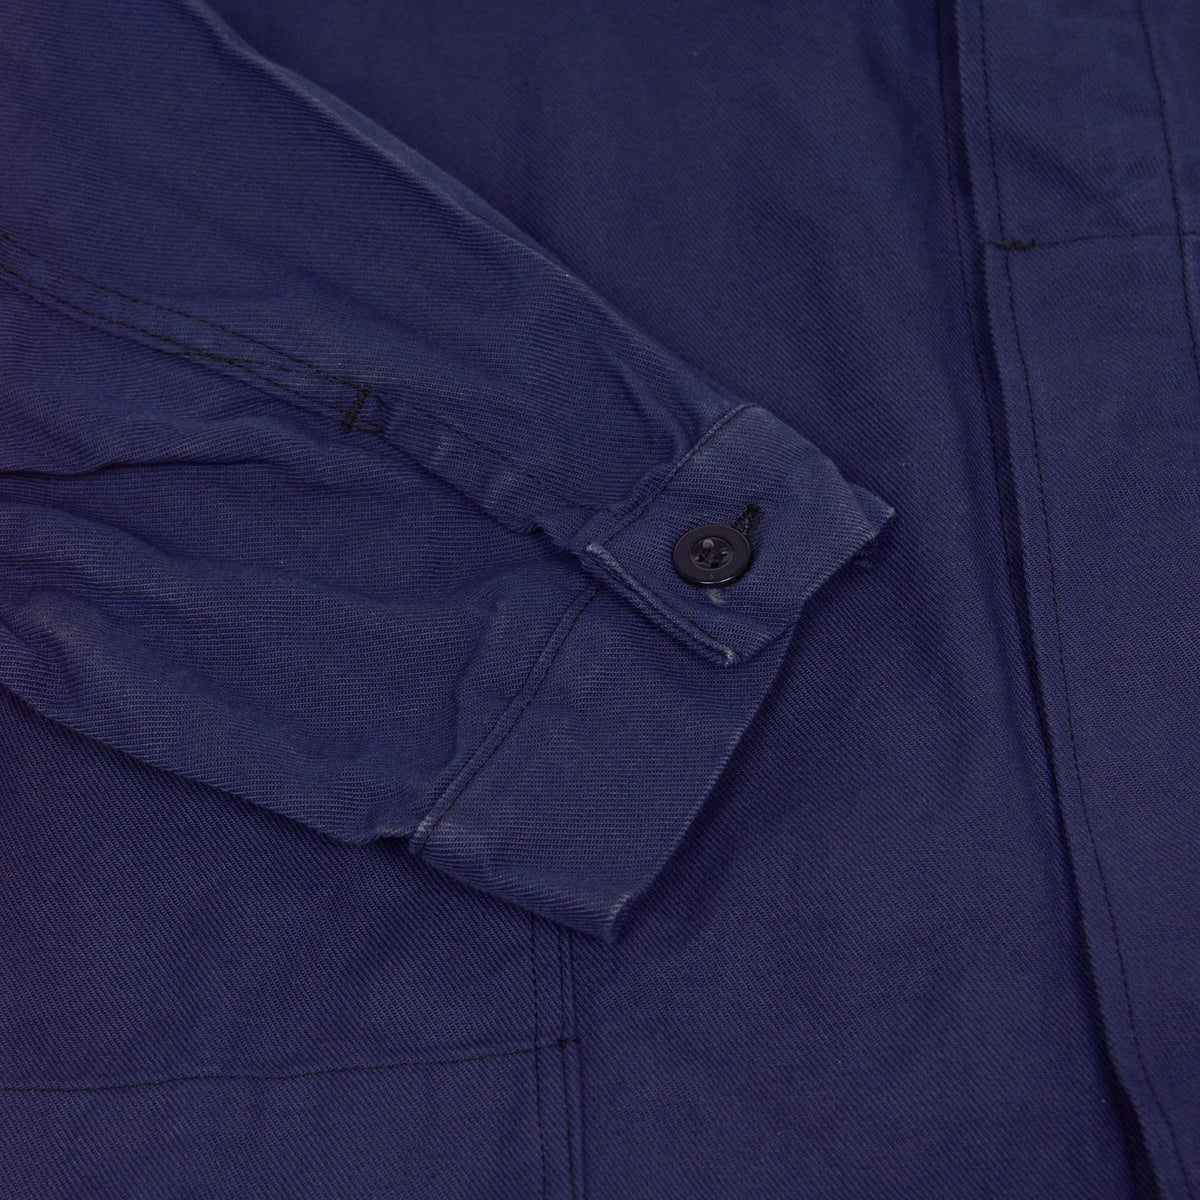 Vintage Blue French Style Worker Sanforized Cotton Twill Chore Jacket L cuff